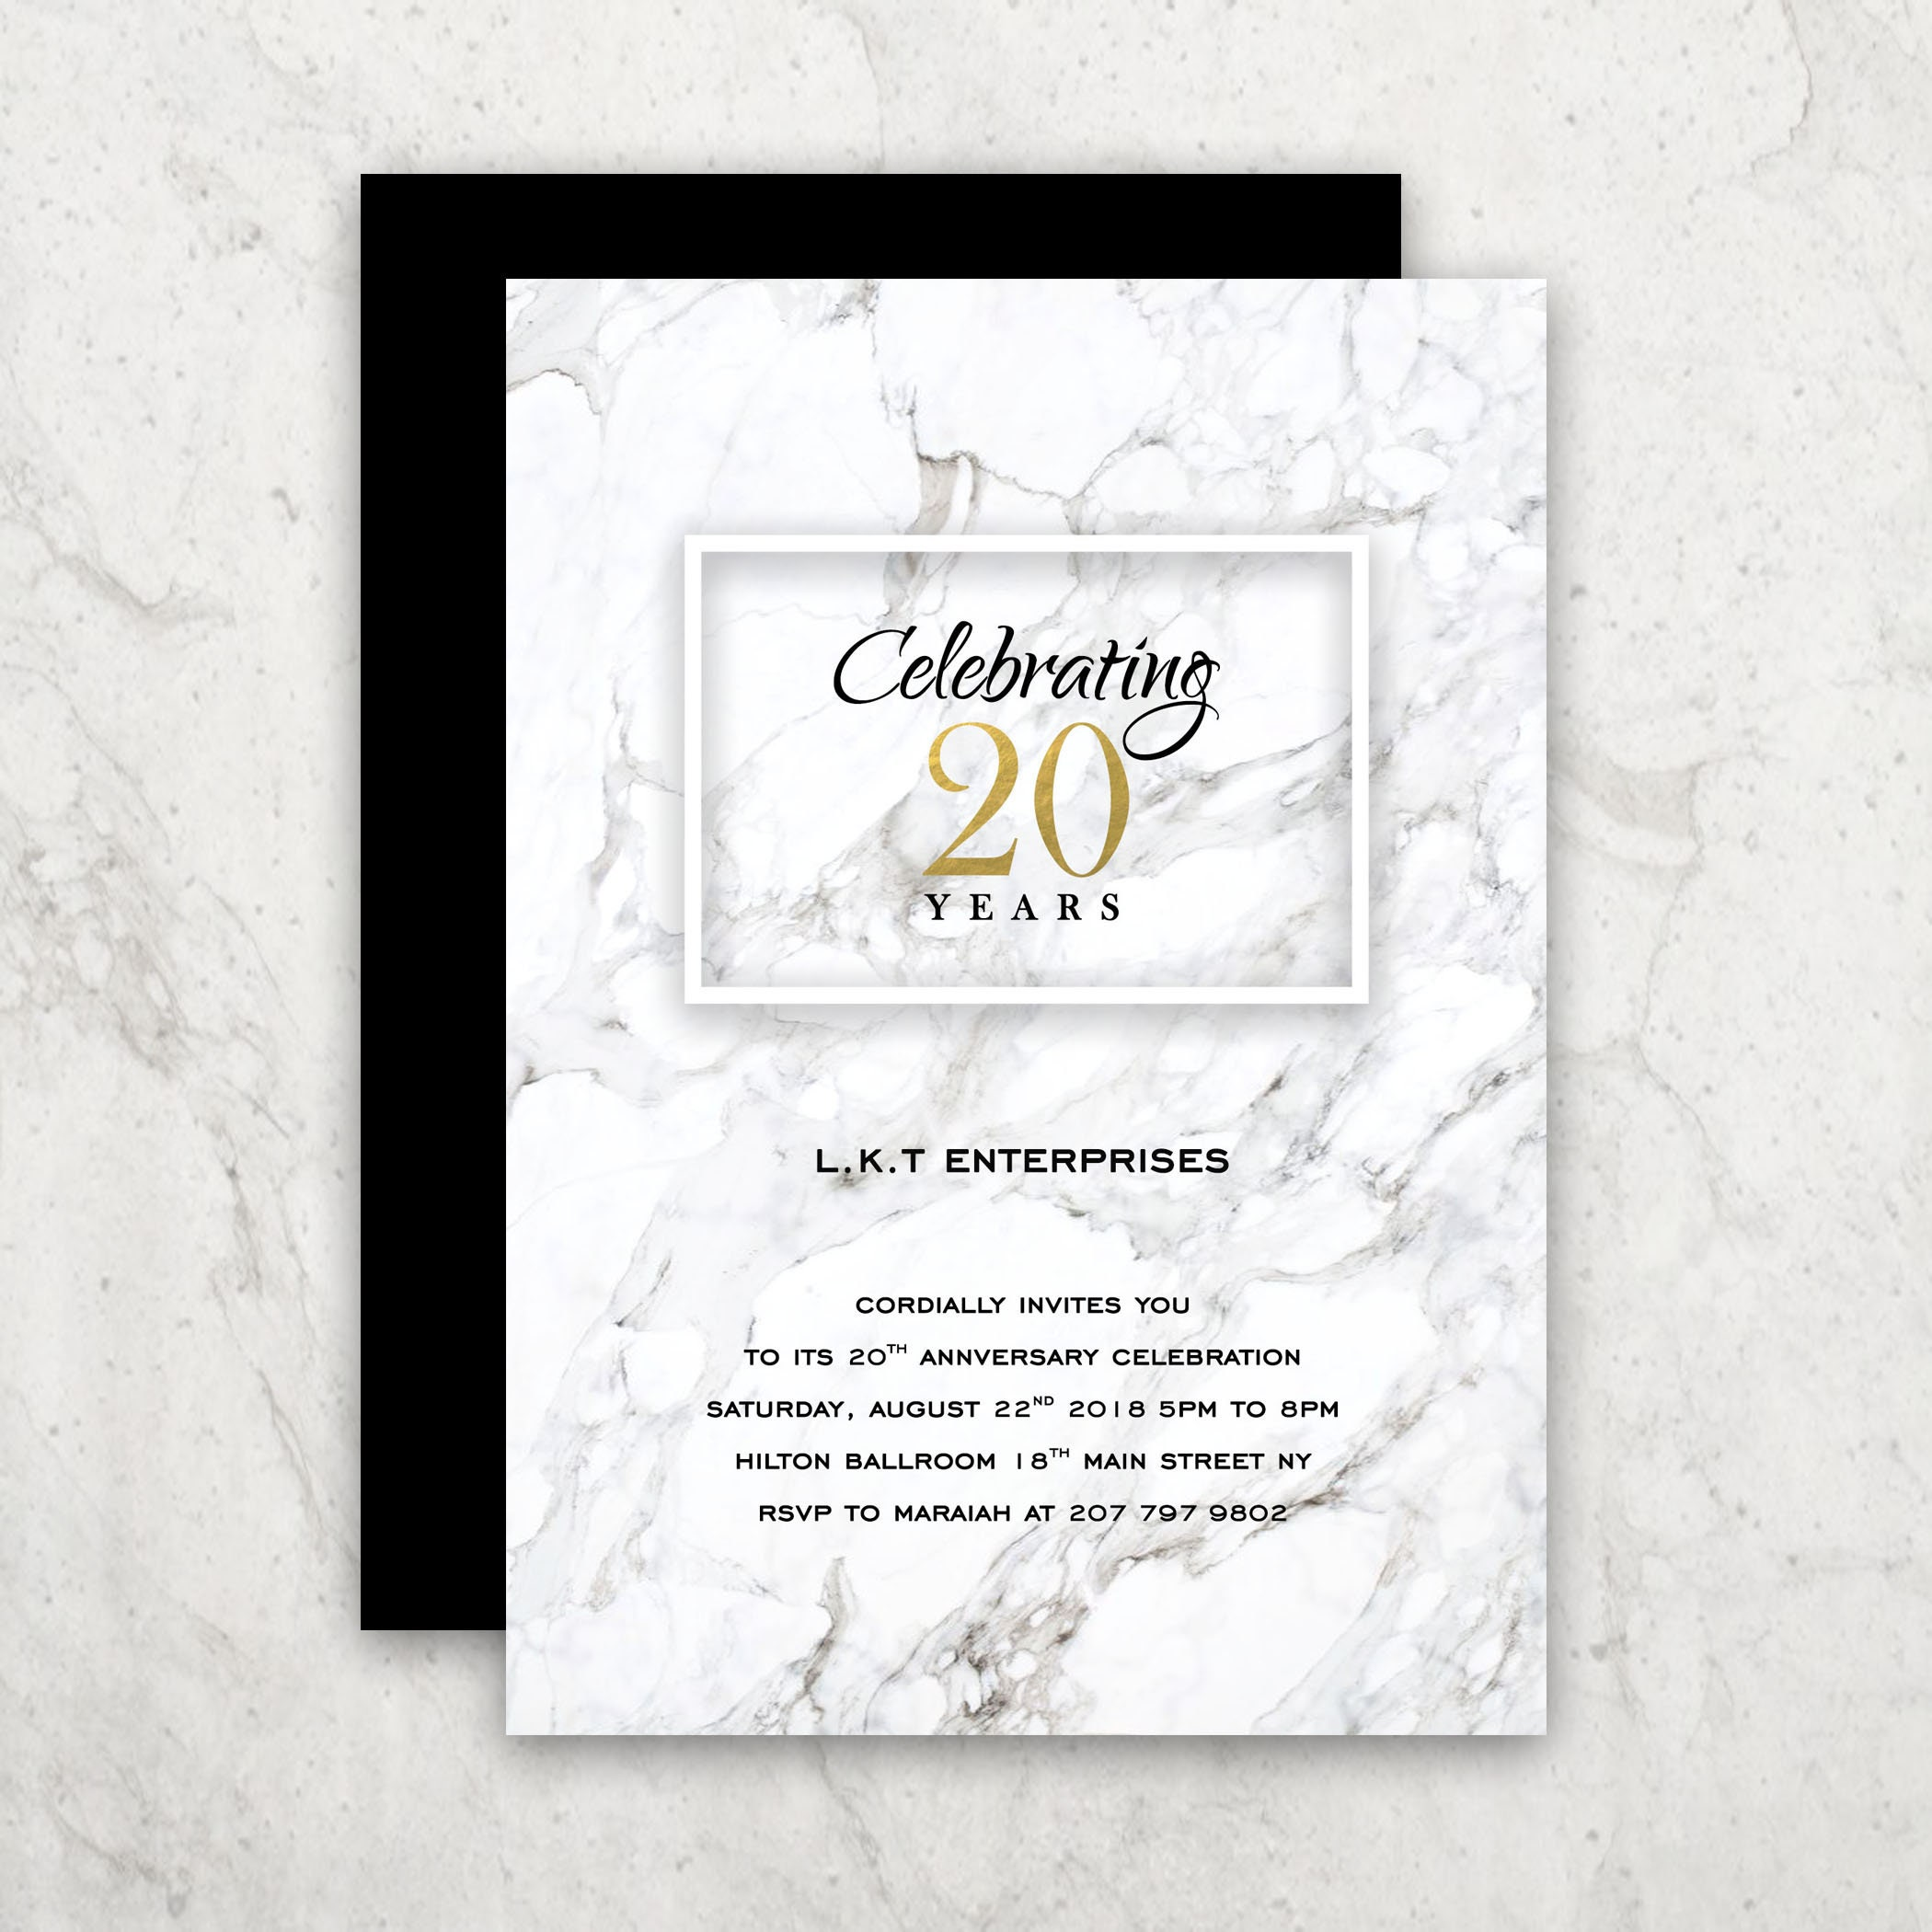 Invitation Design Corporate Invites Marbled Design Etsy